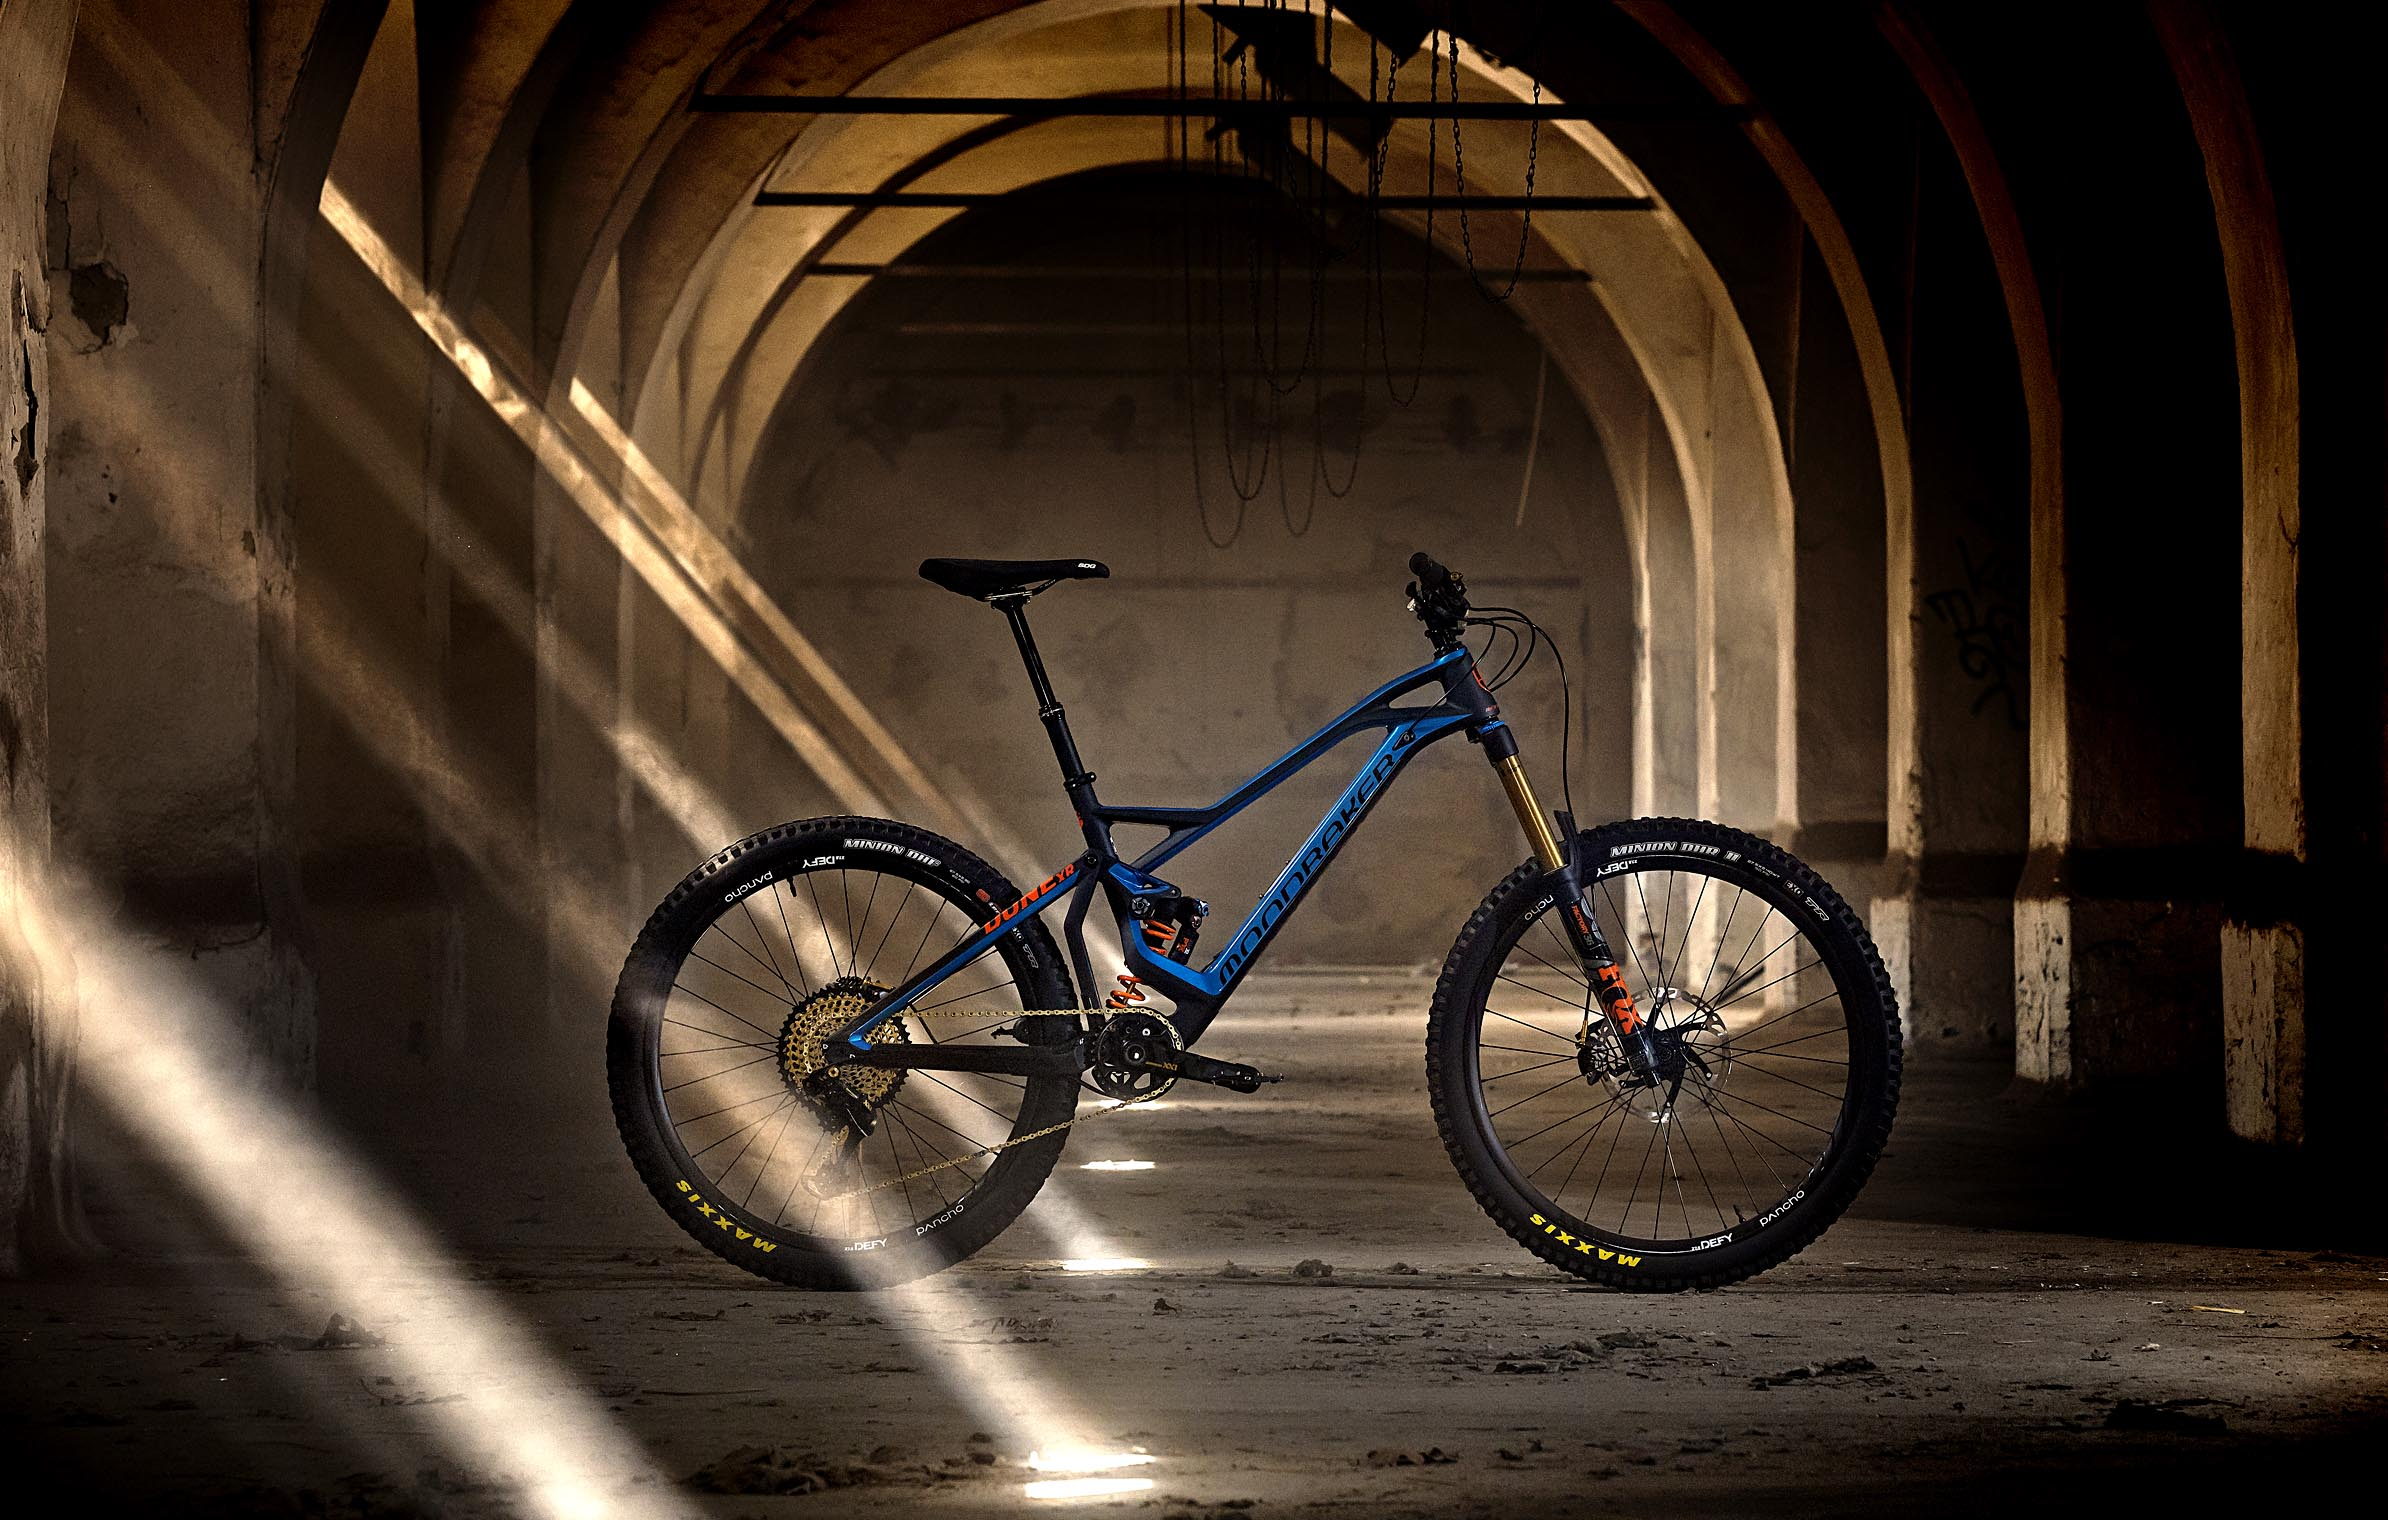 mondraker_lemur_bike_and_bones_dune_custom_bike_mtb_enduro_2graz